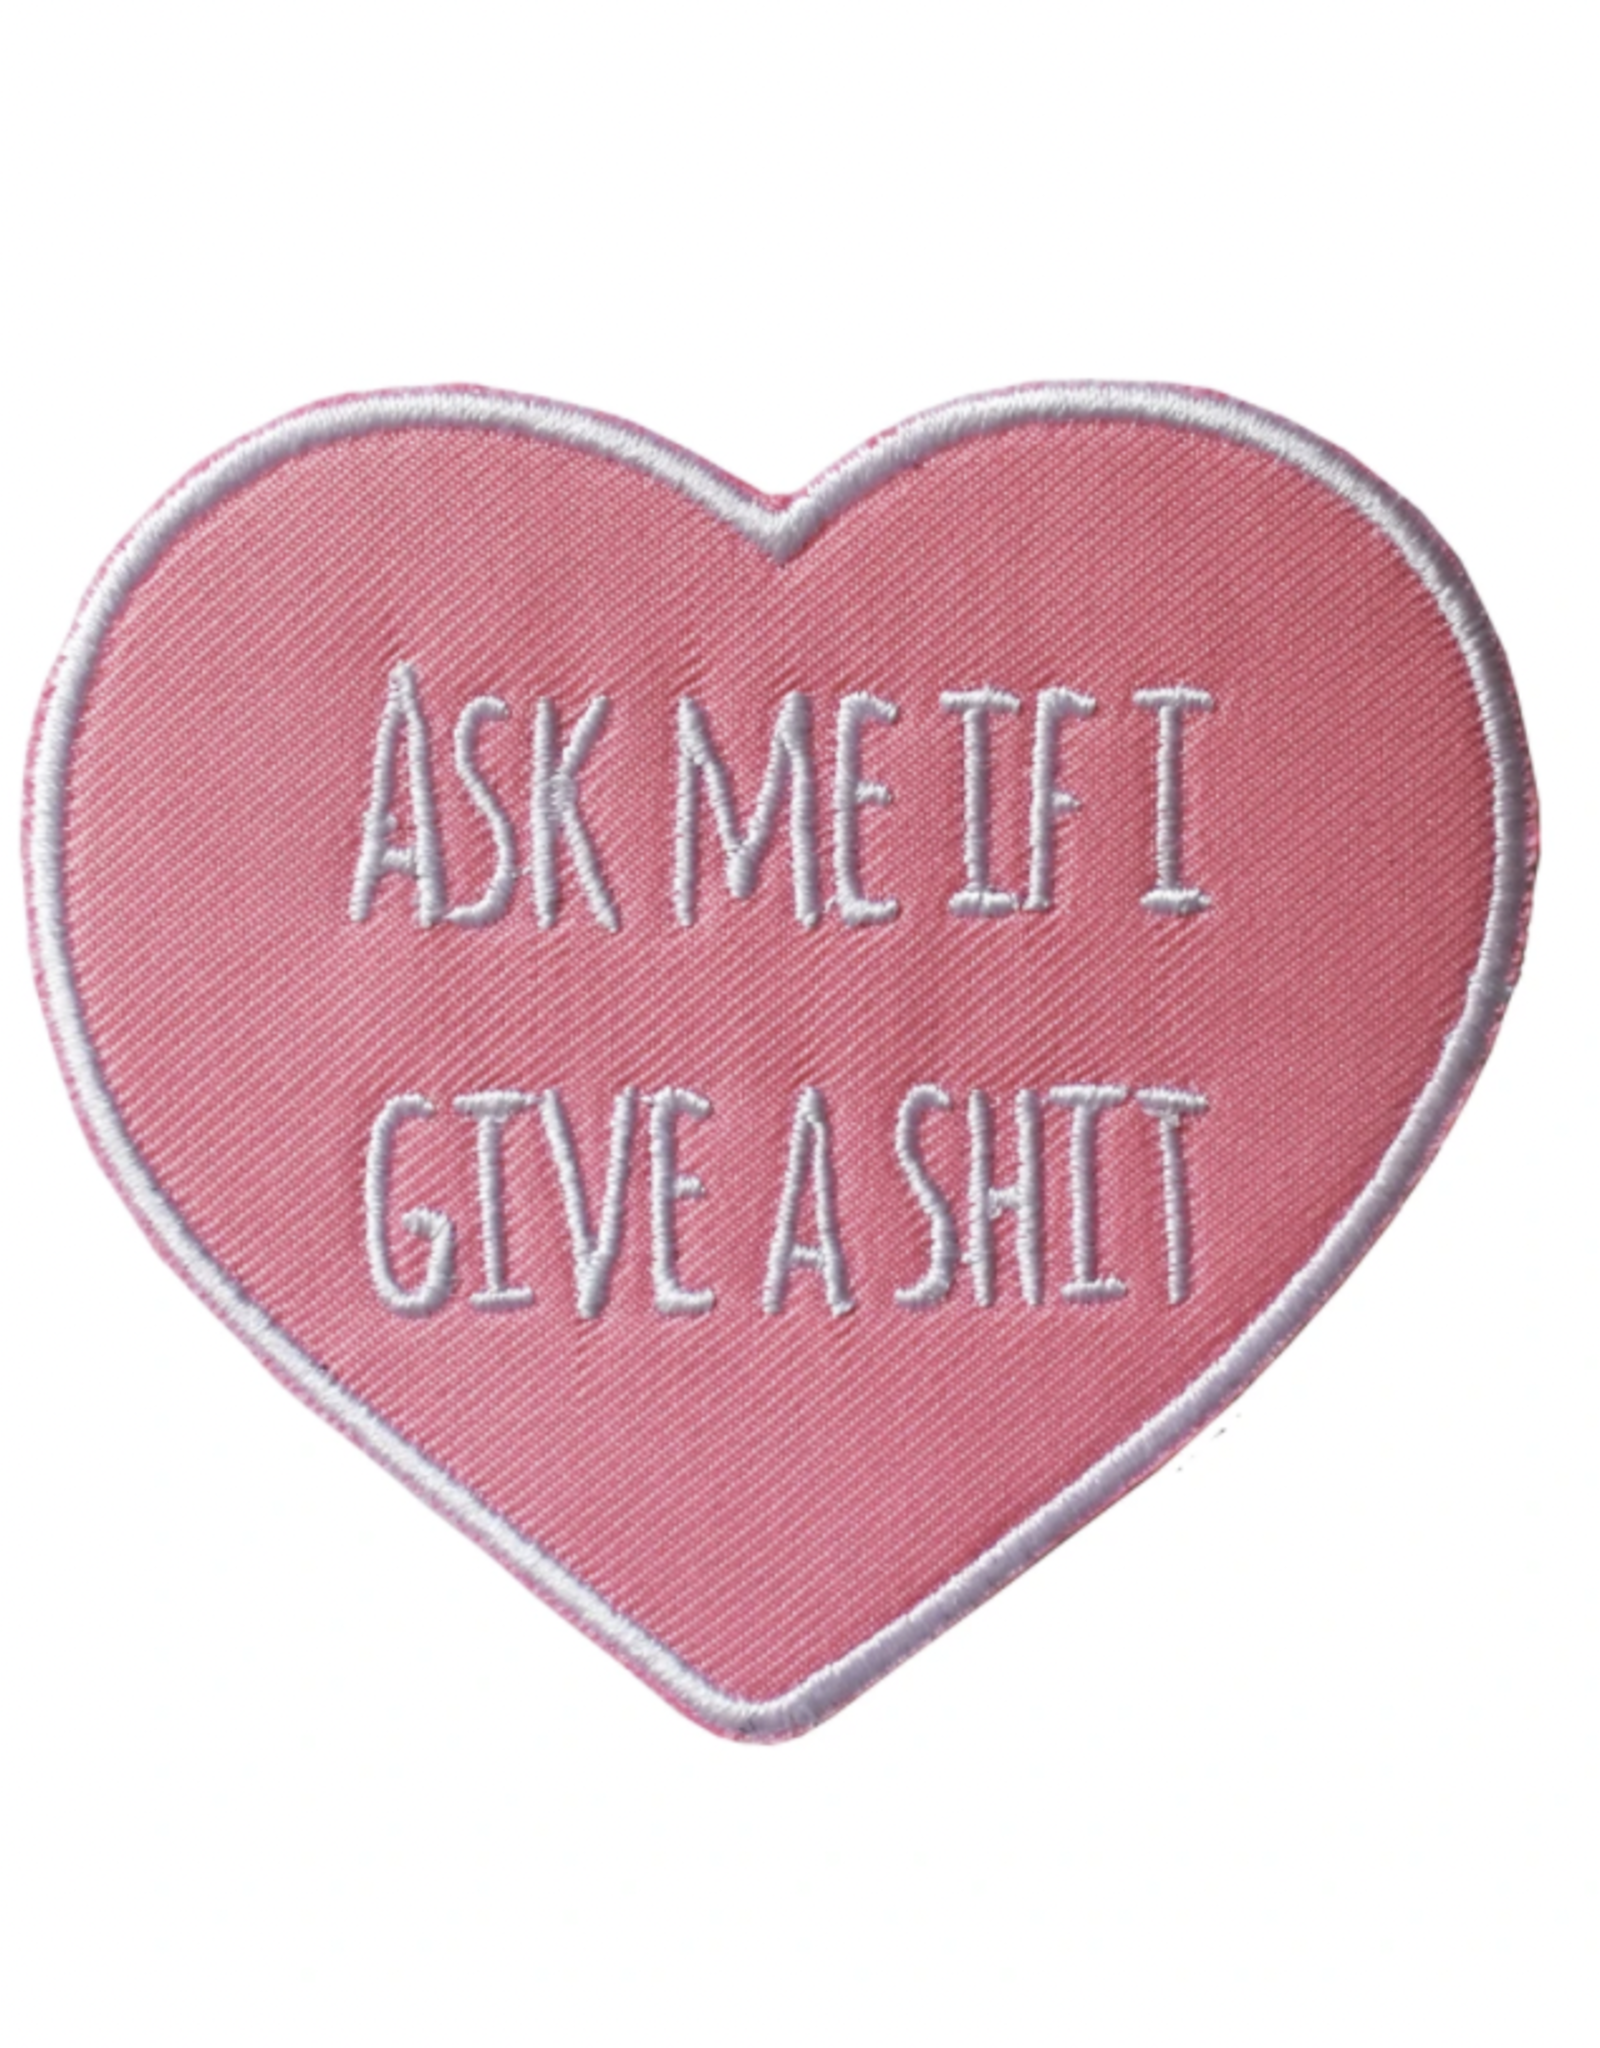 Ask Me If I Give a Shit Embroidered Patch